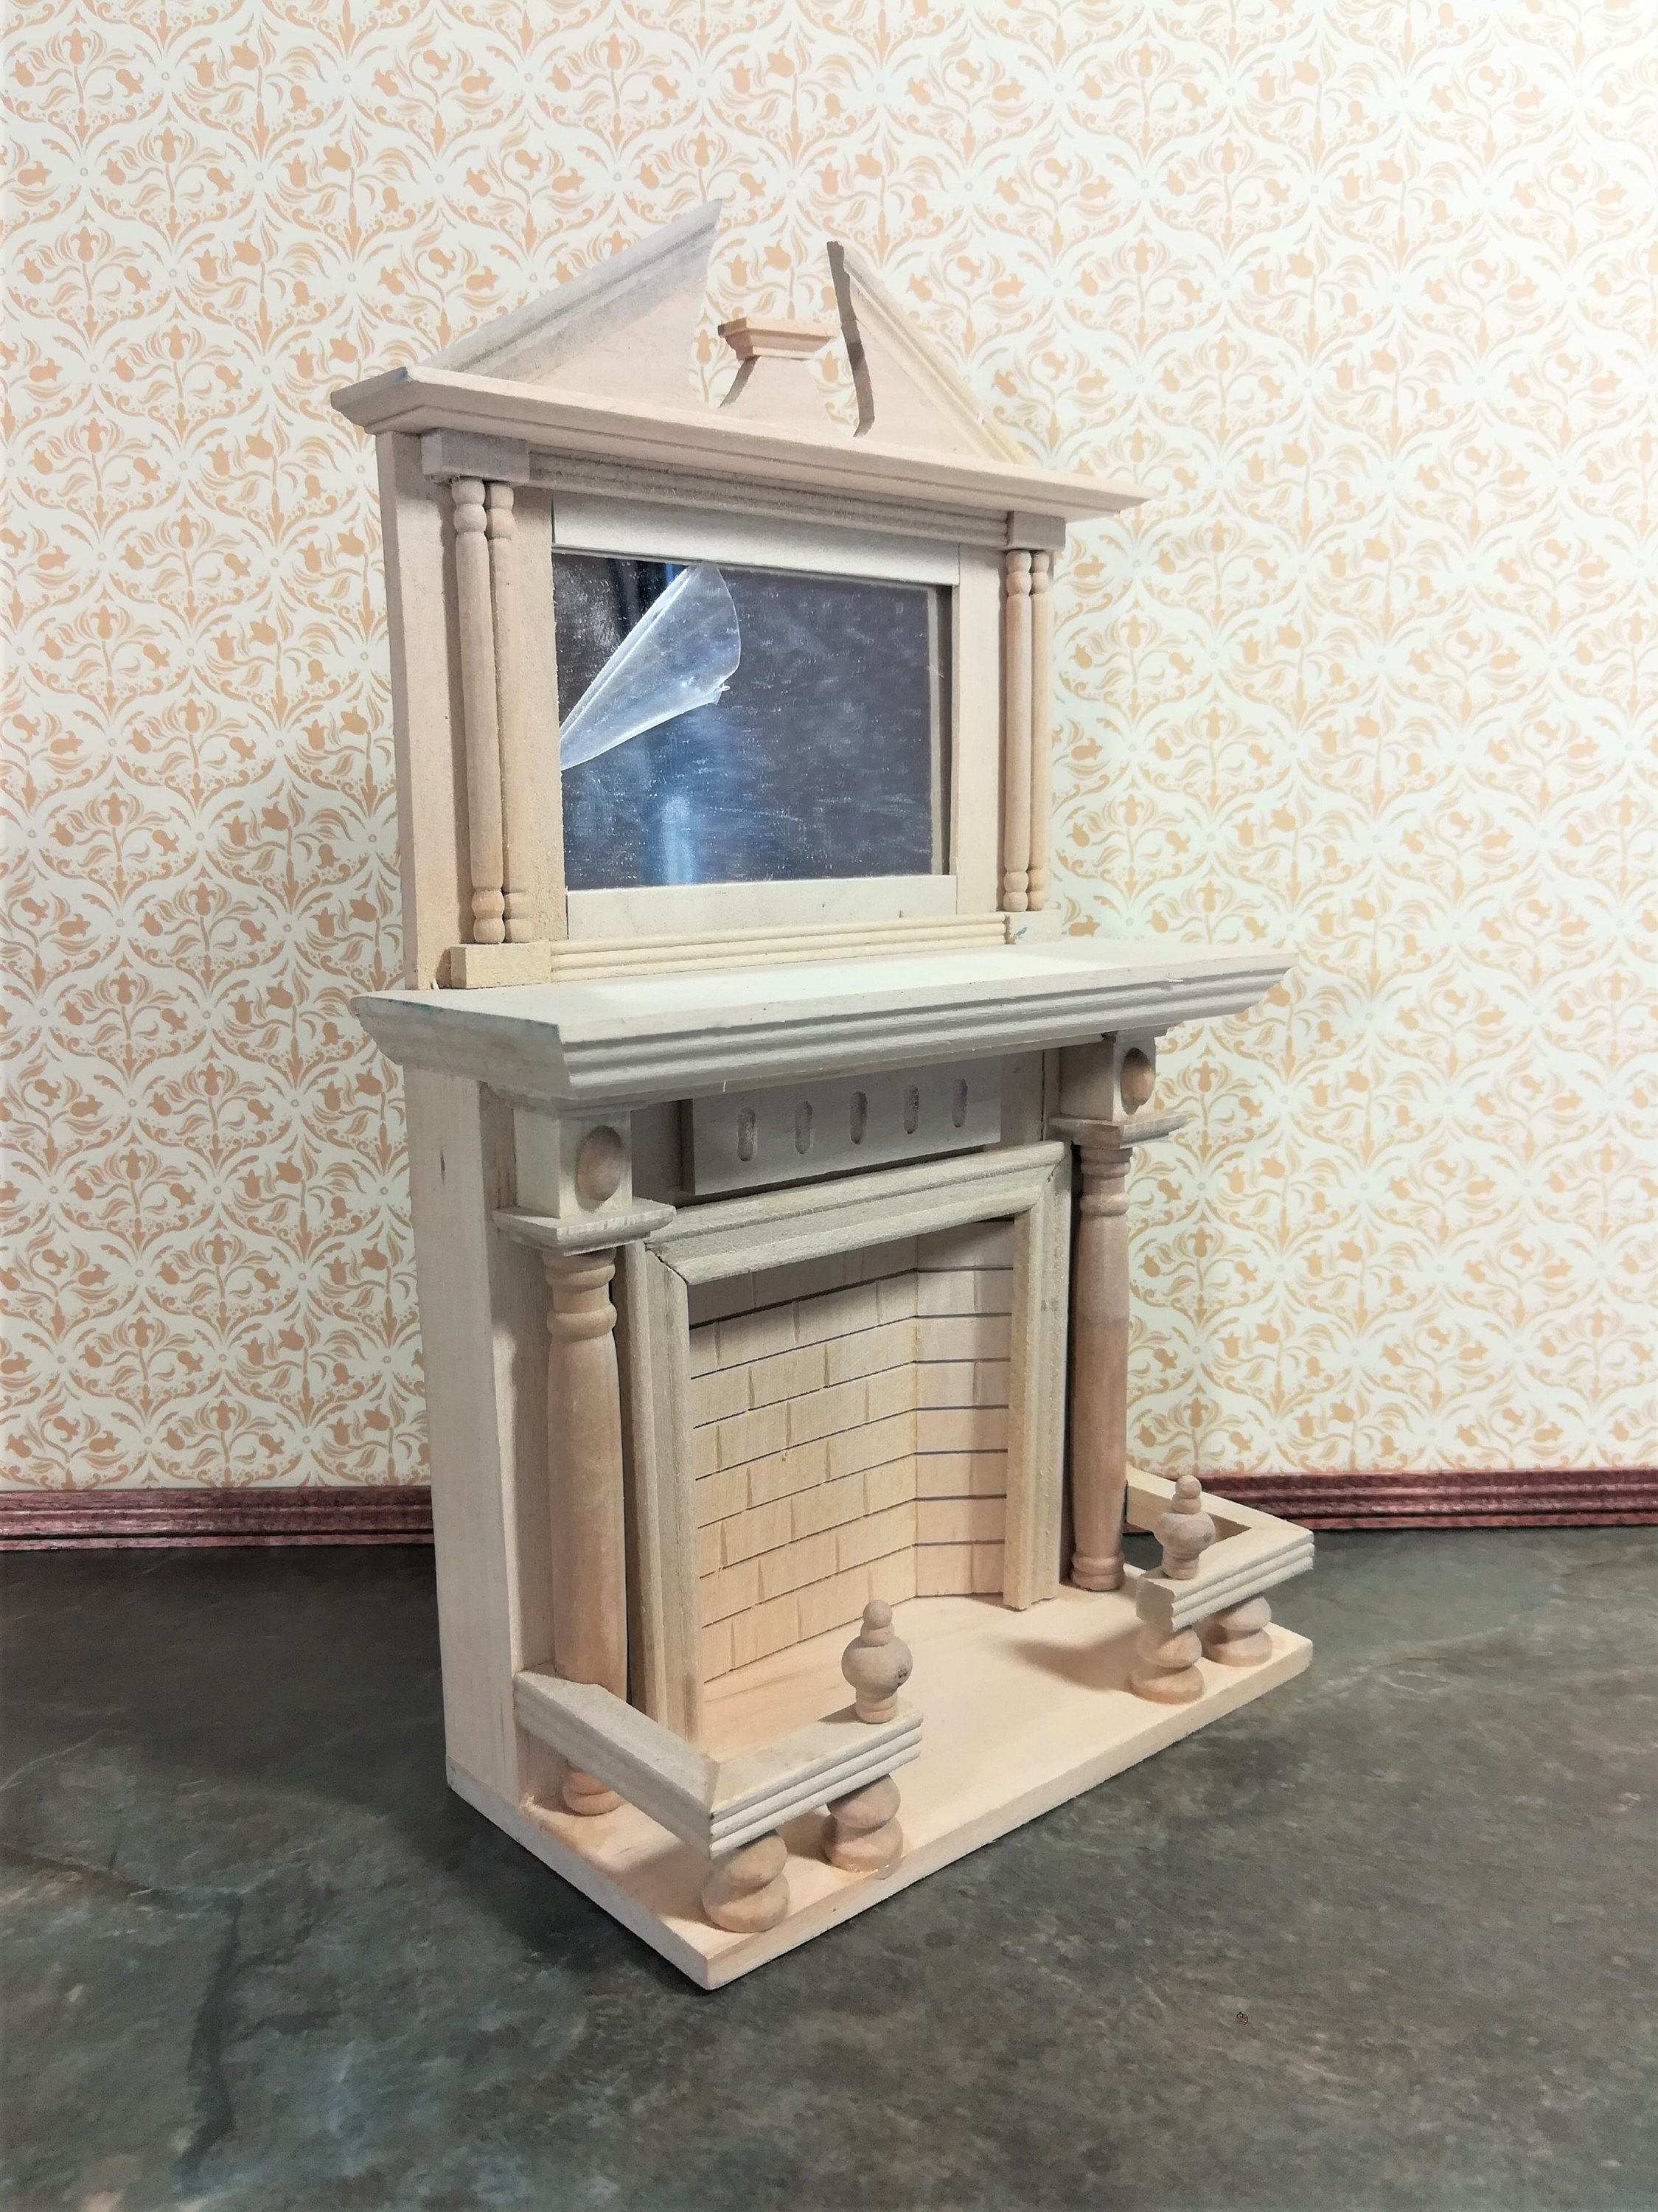 Dollhouse Miniature Unfinished Fireplace with Mantel DIY 1:12 Scale